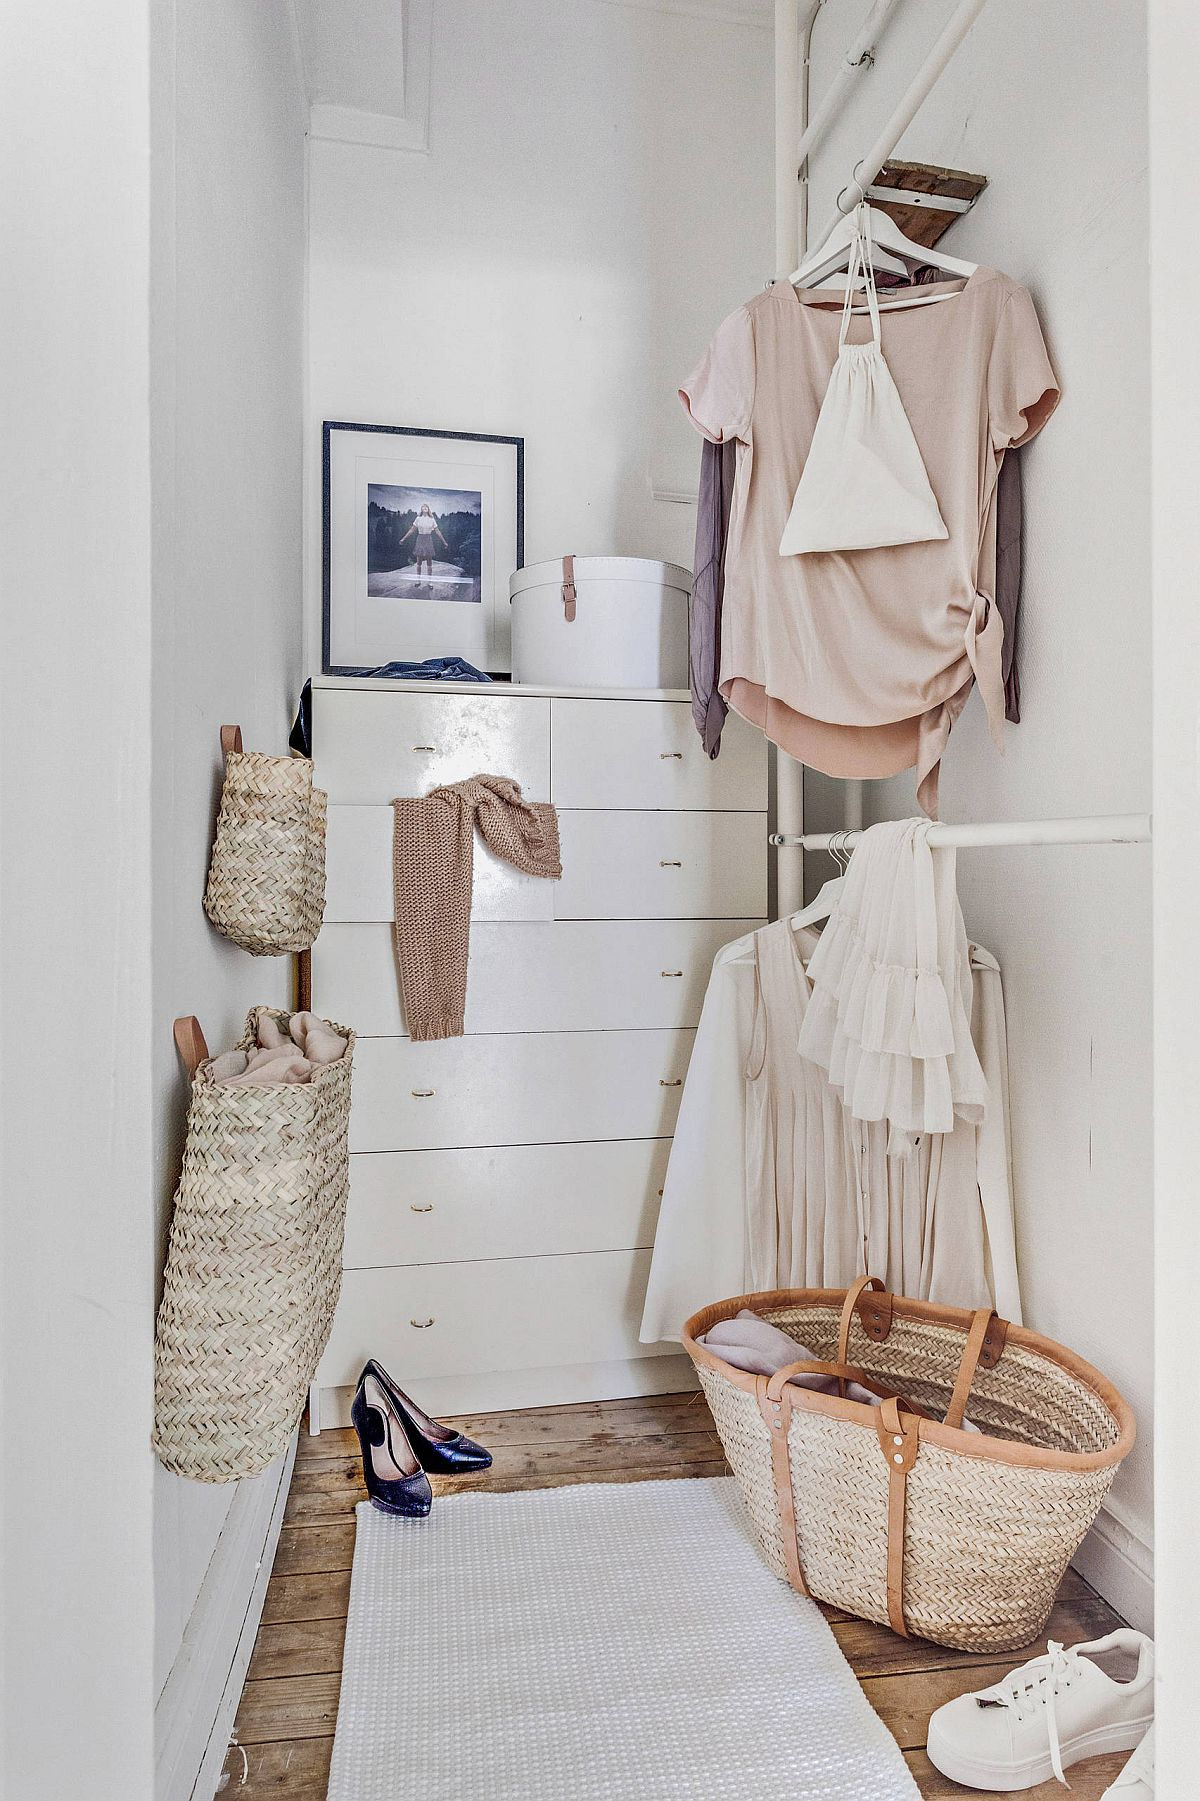 Neatly designed white cabinets and baskets create ample storage space in this wardrobe niche